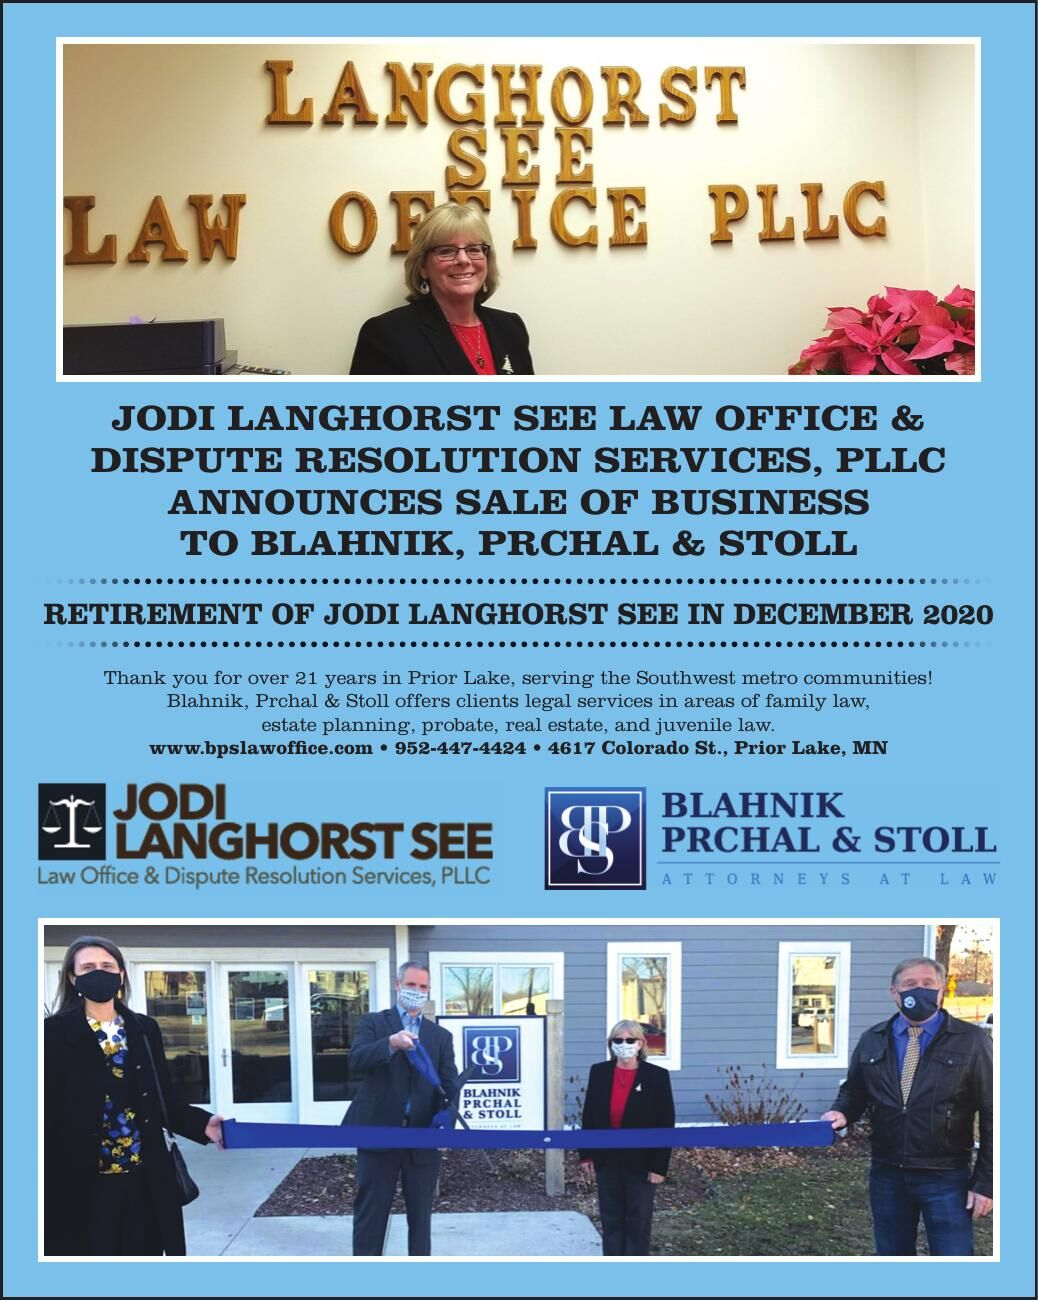 Jodi Langhorst see Law office & dispute